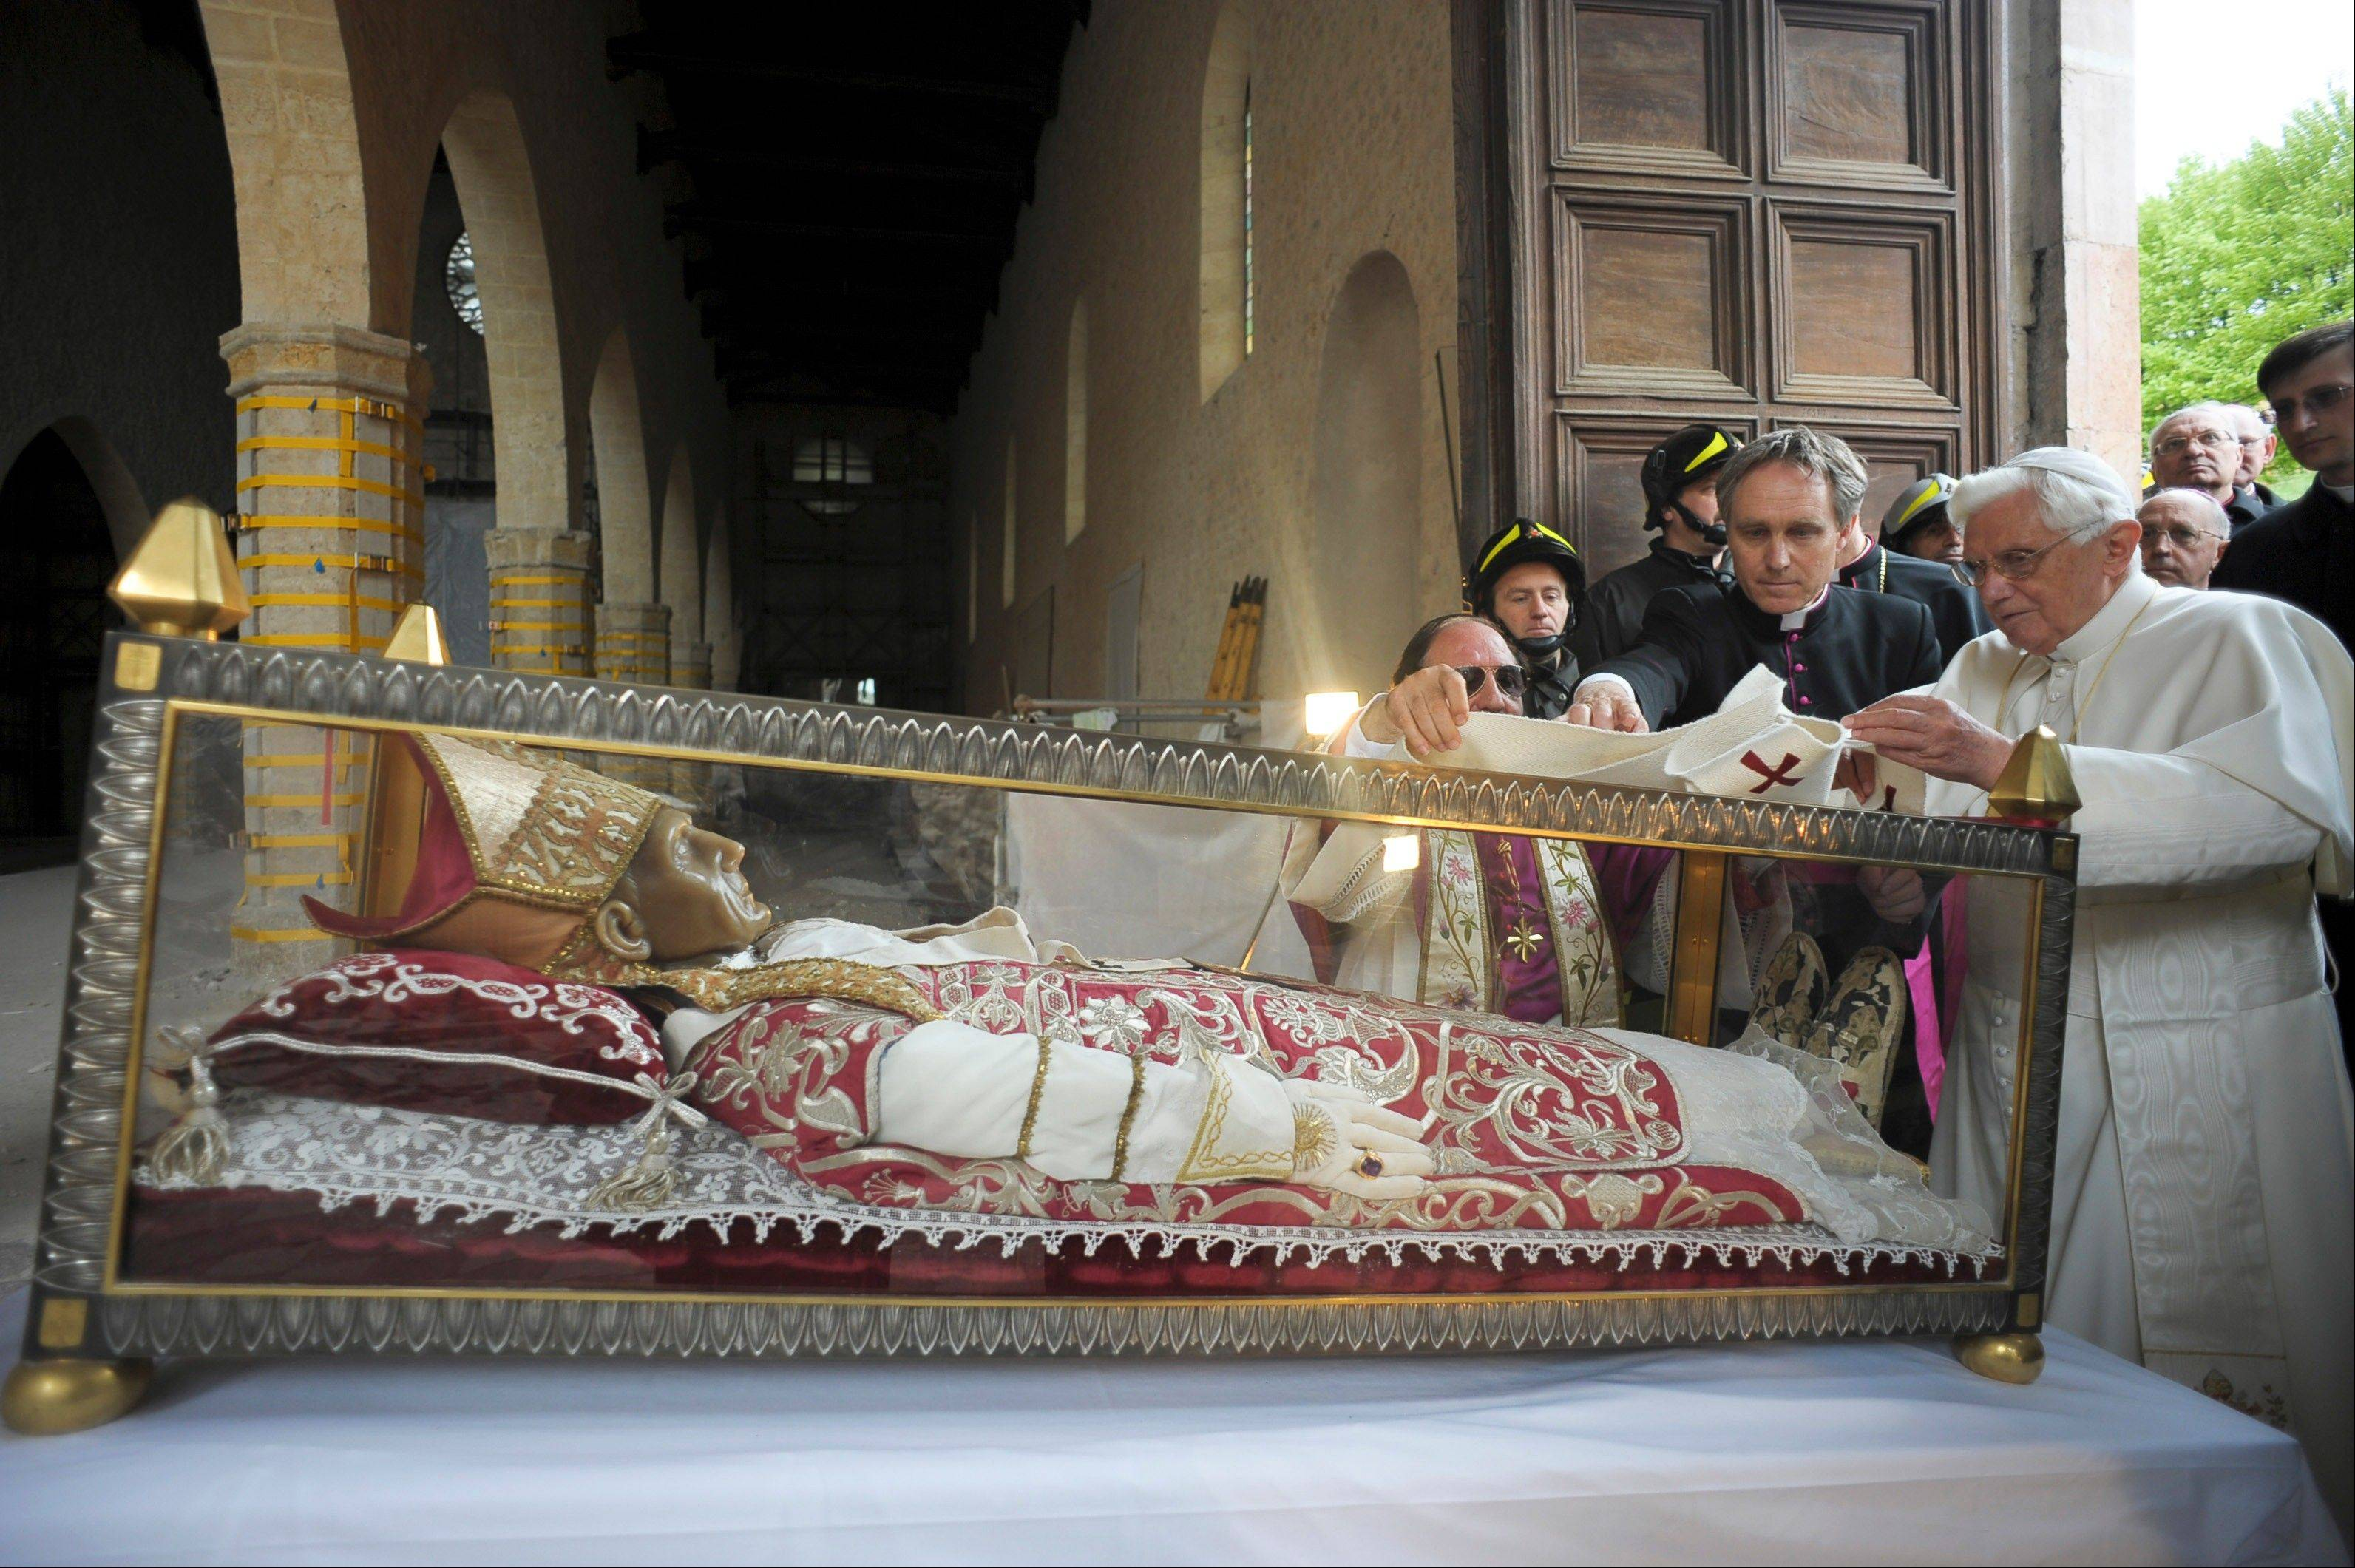 Pope Benedict XVI stands by the salvaged remains of Pope Celestine V in the 13th-century Santa Maria di Collemaggio Basilica, the symbol of the city of L'Aquila.